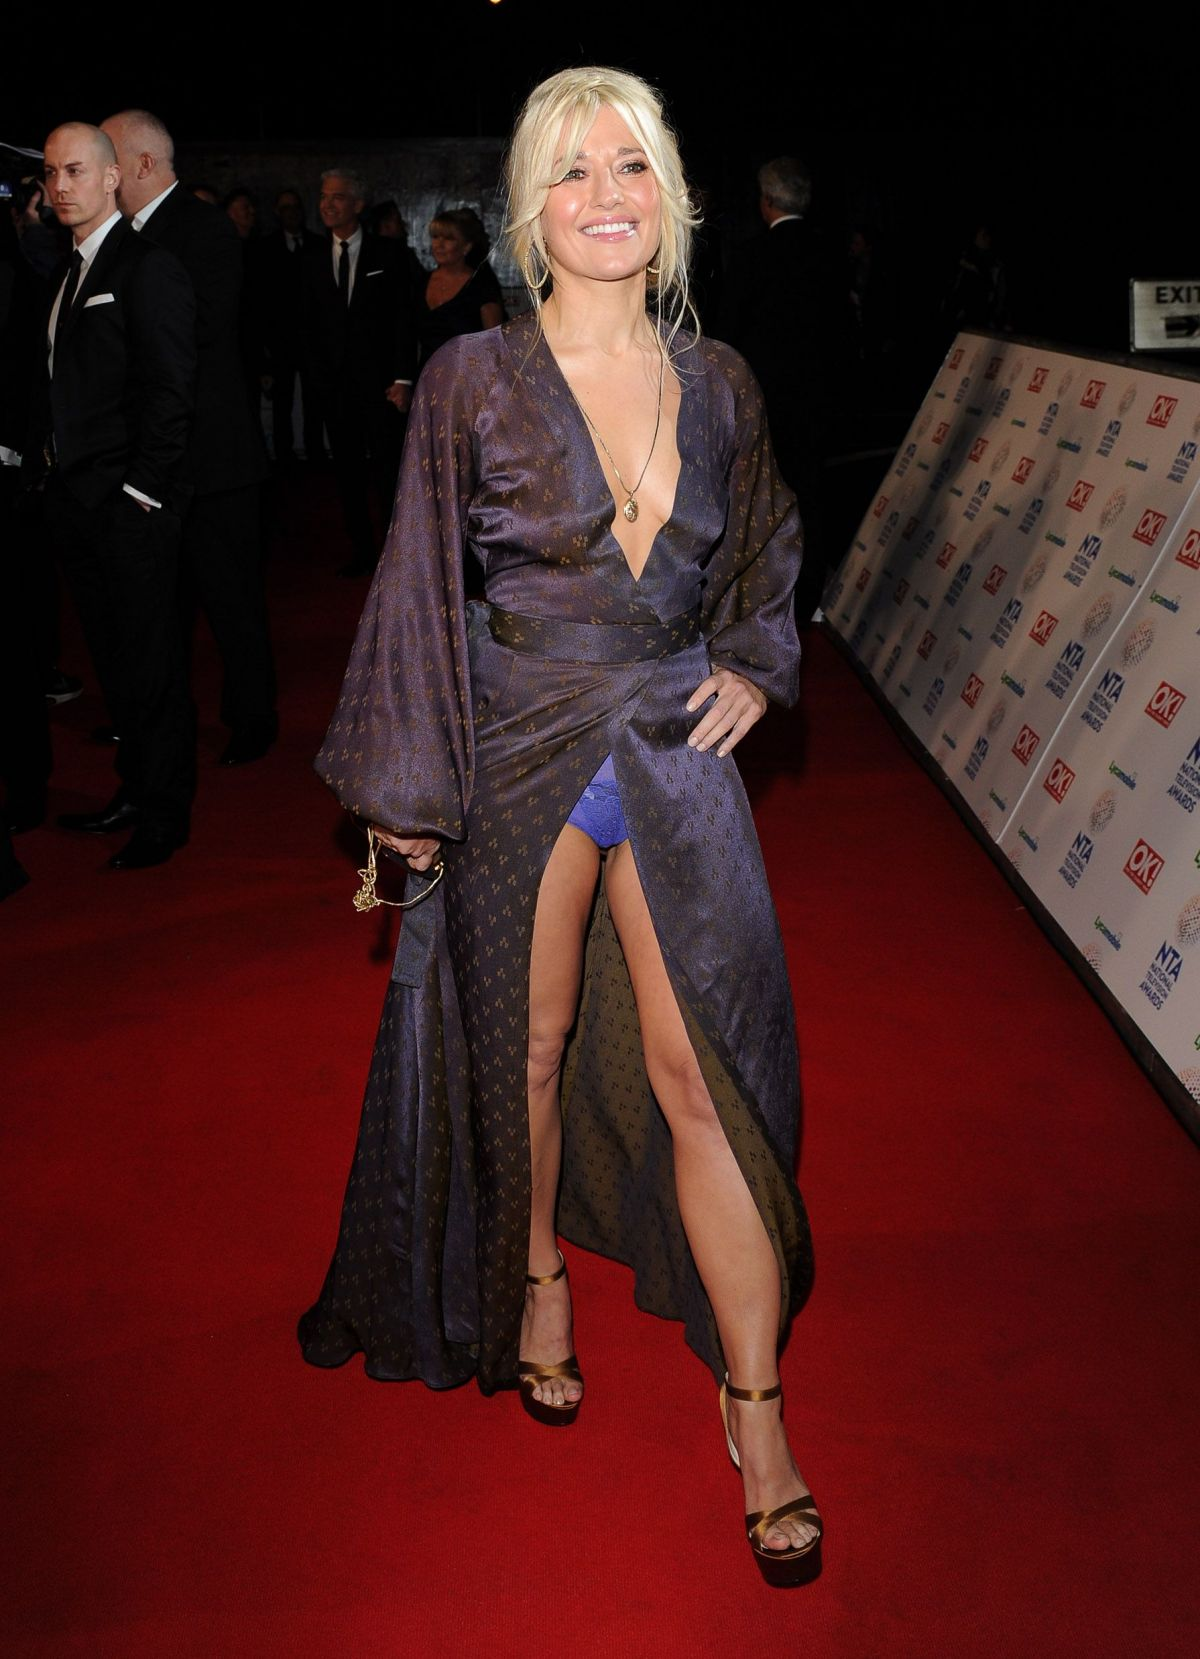 RACHEL WILDE at 2014 National Television Awards in London